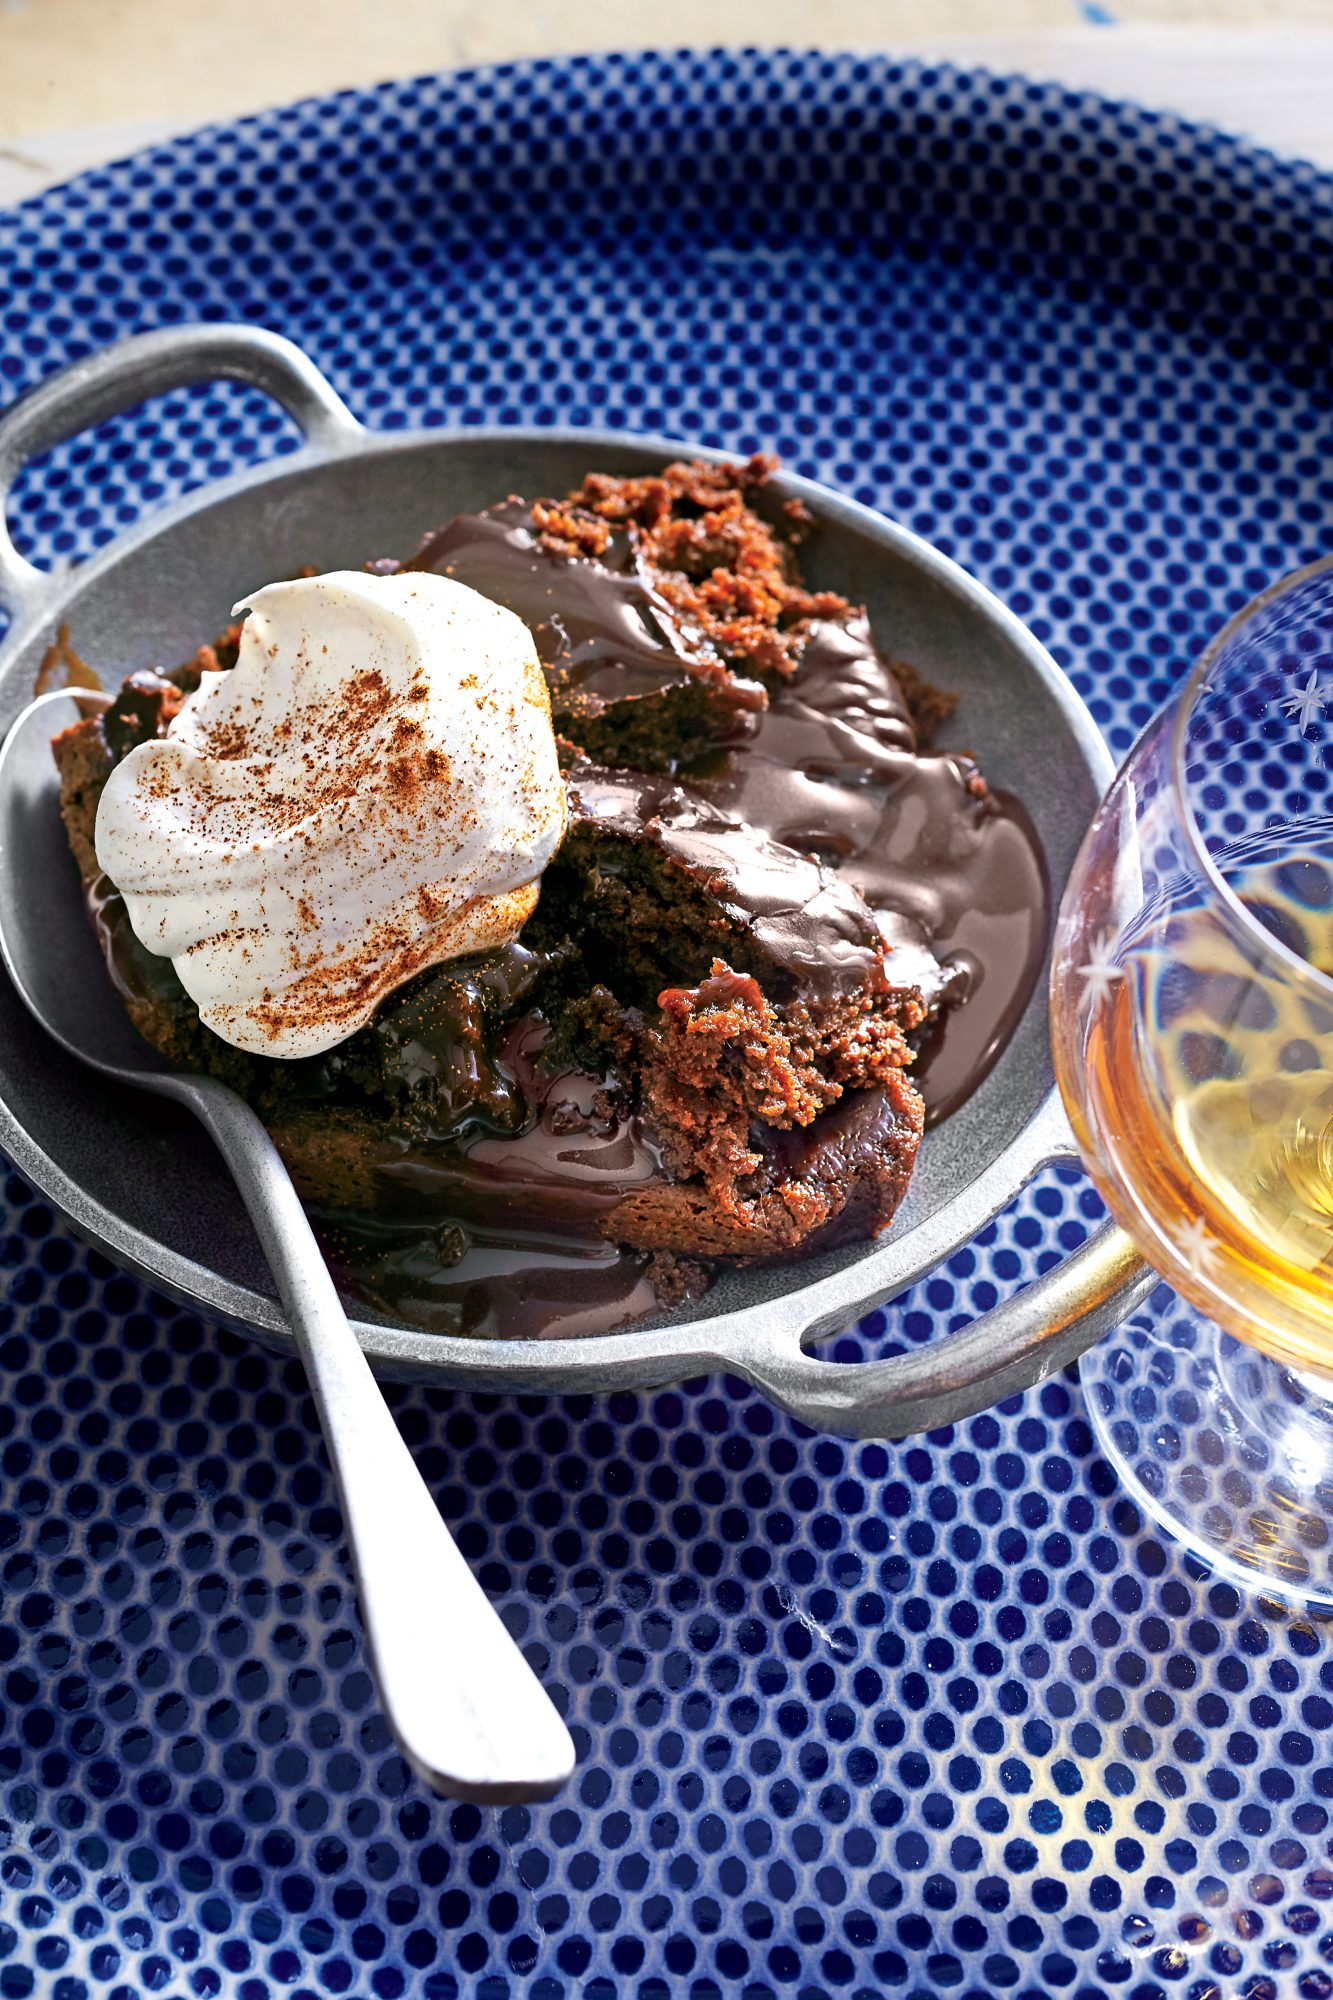 Chocolate Lava Cake with Cinnamon Whipped Cream Recipe Southern Living